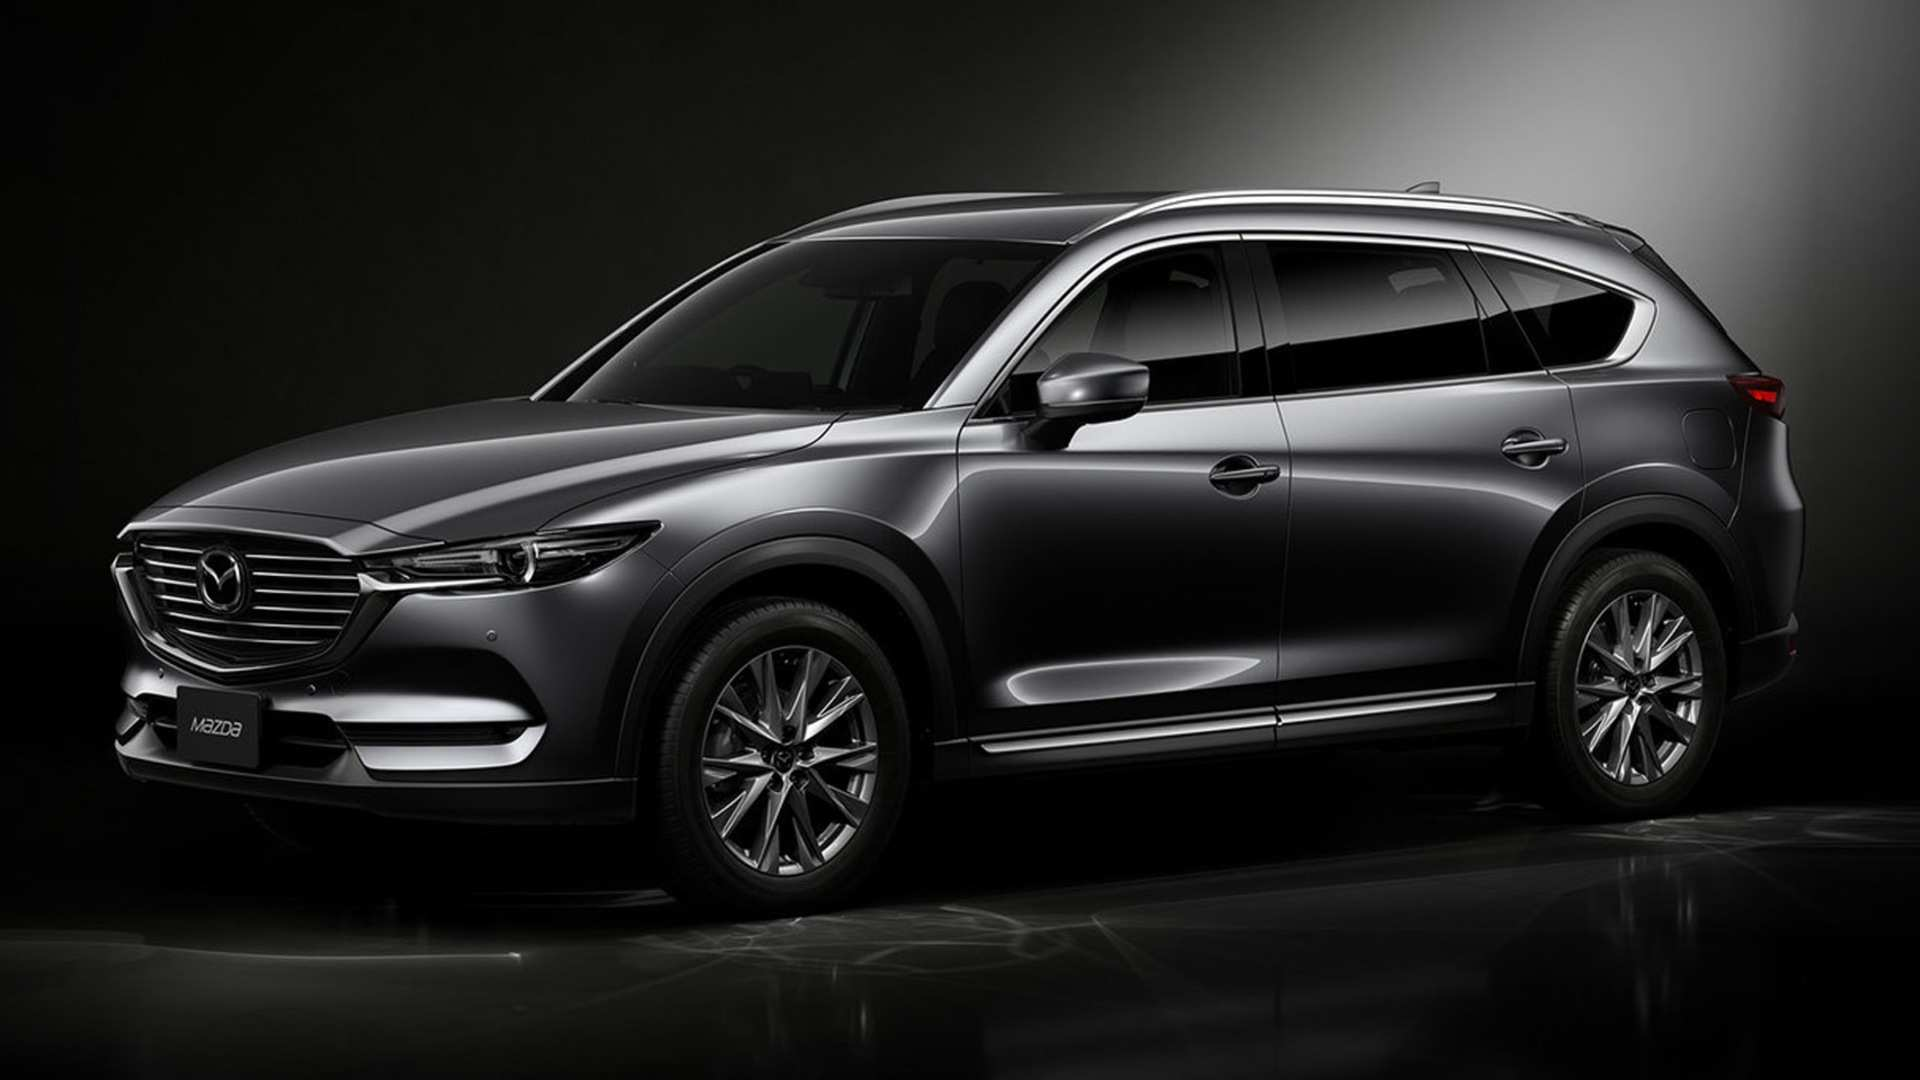 98 Best Review Mazda Cx 9 2020 Prices with Mazda Cx 9 2020